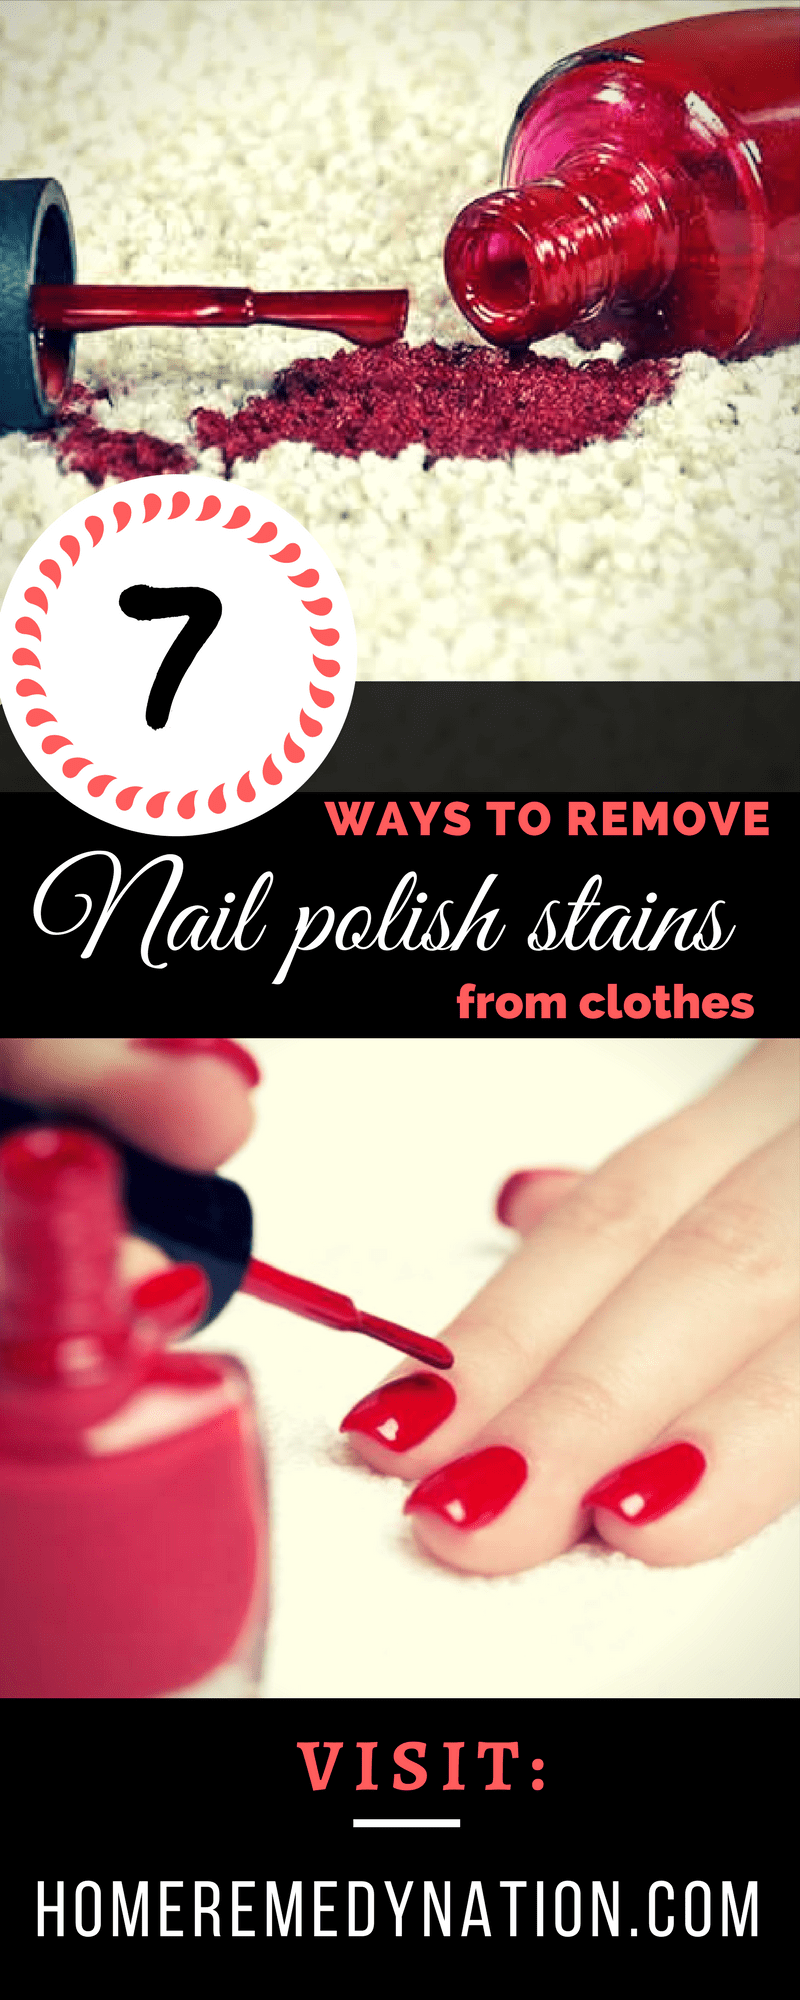 7 Substantial Ways To Easily Remove Nail Polish Stains From Clothes Home Remedy Nation Nail Polish Stain Nail Polish Remover Old Nail Polish